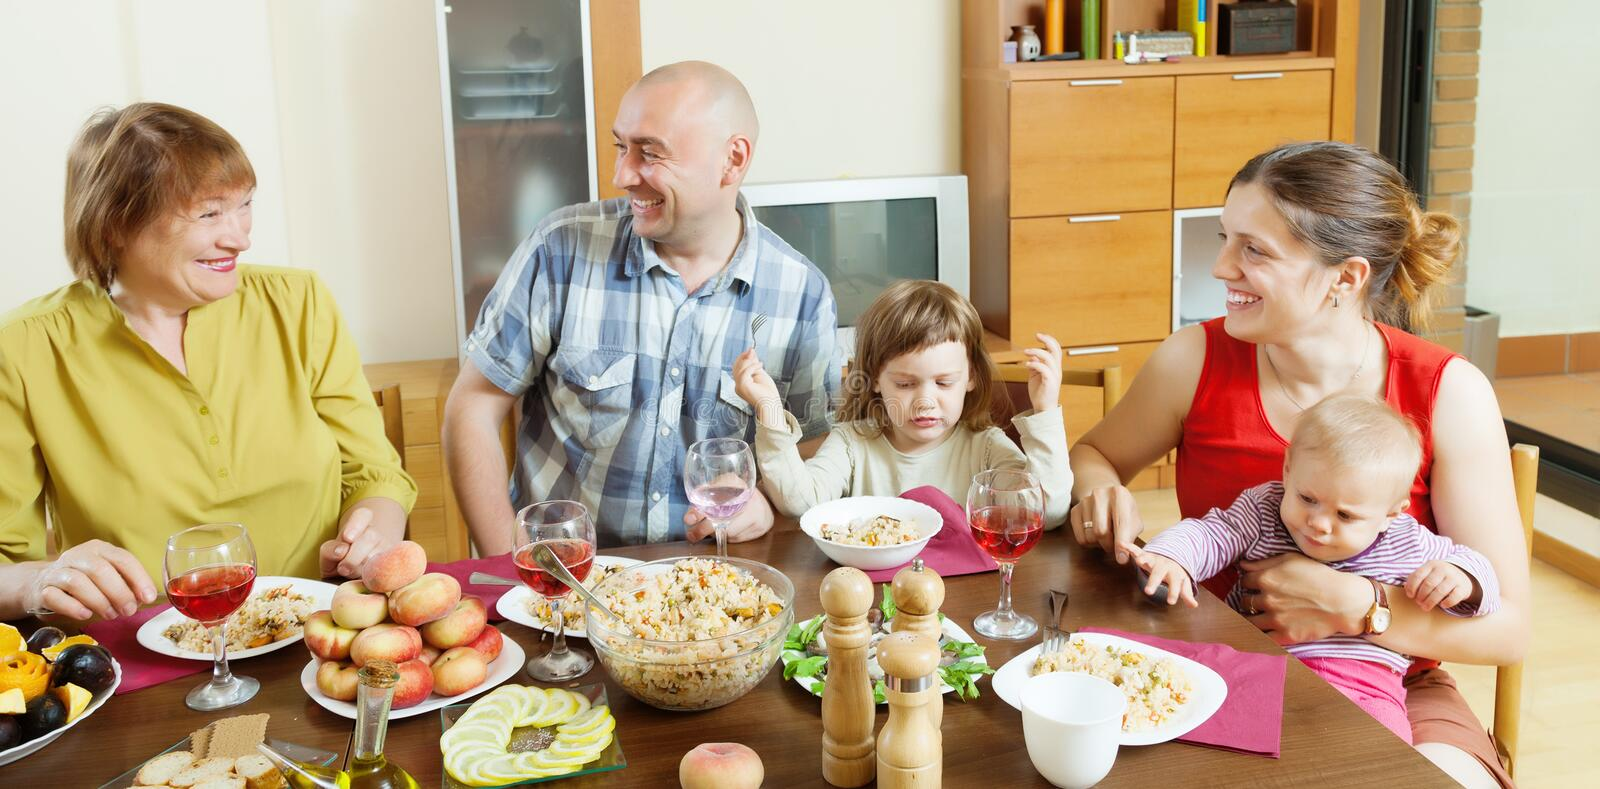 Happy  Family Communicate Over Holiday Table Stock Photo